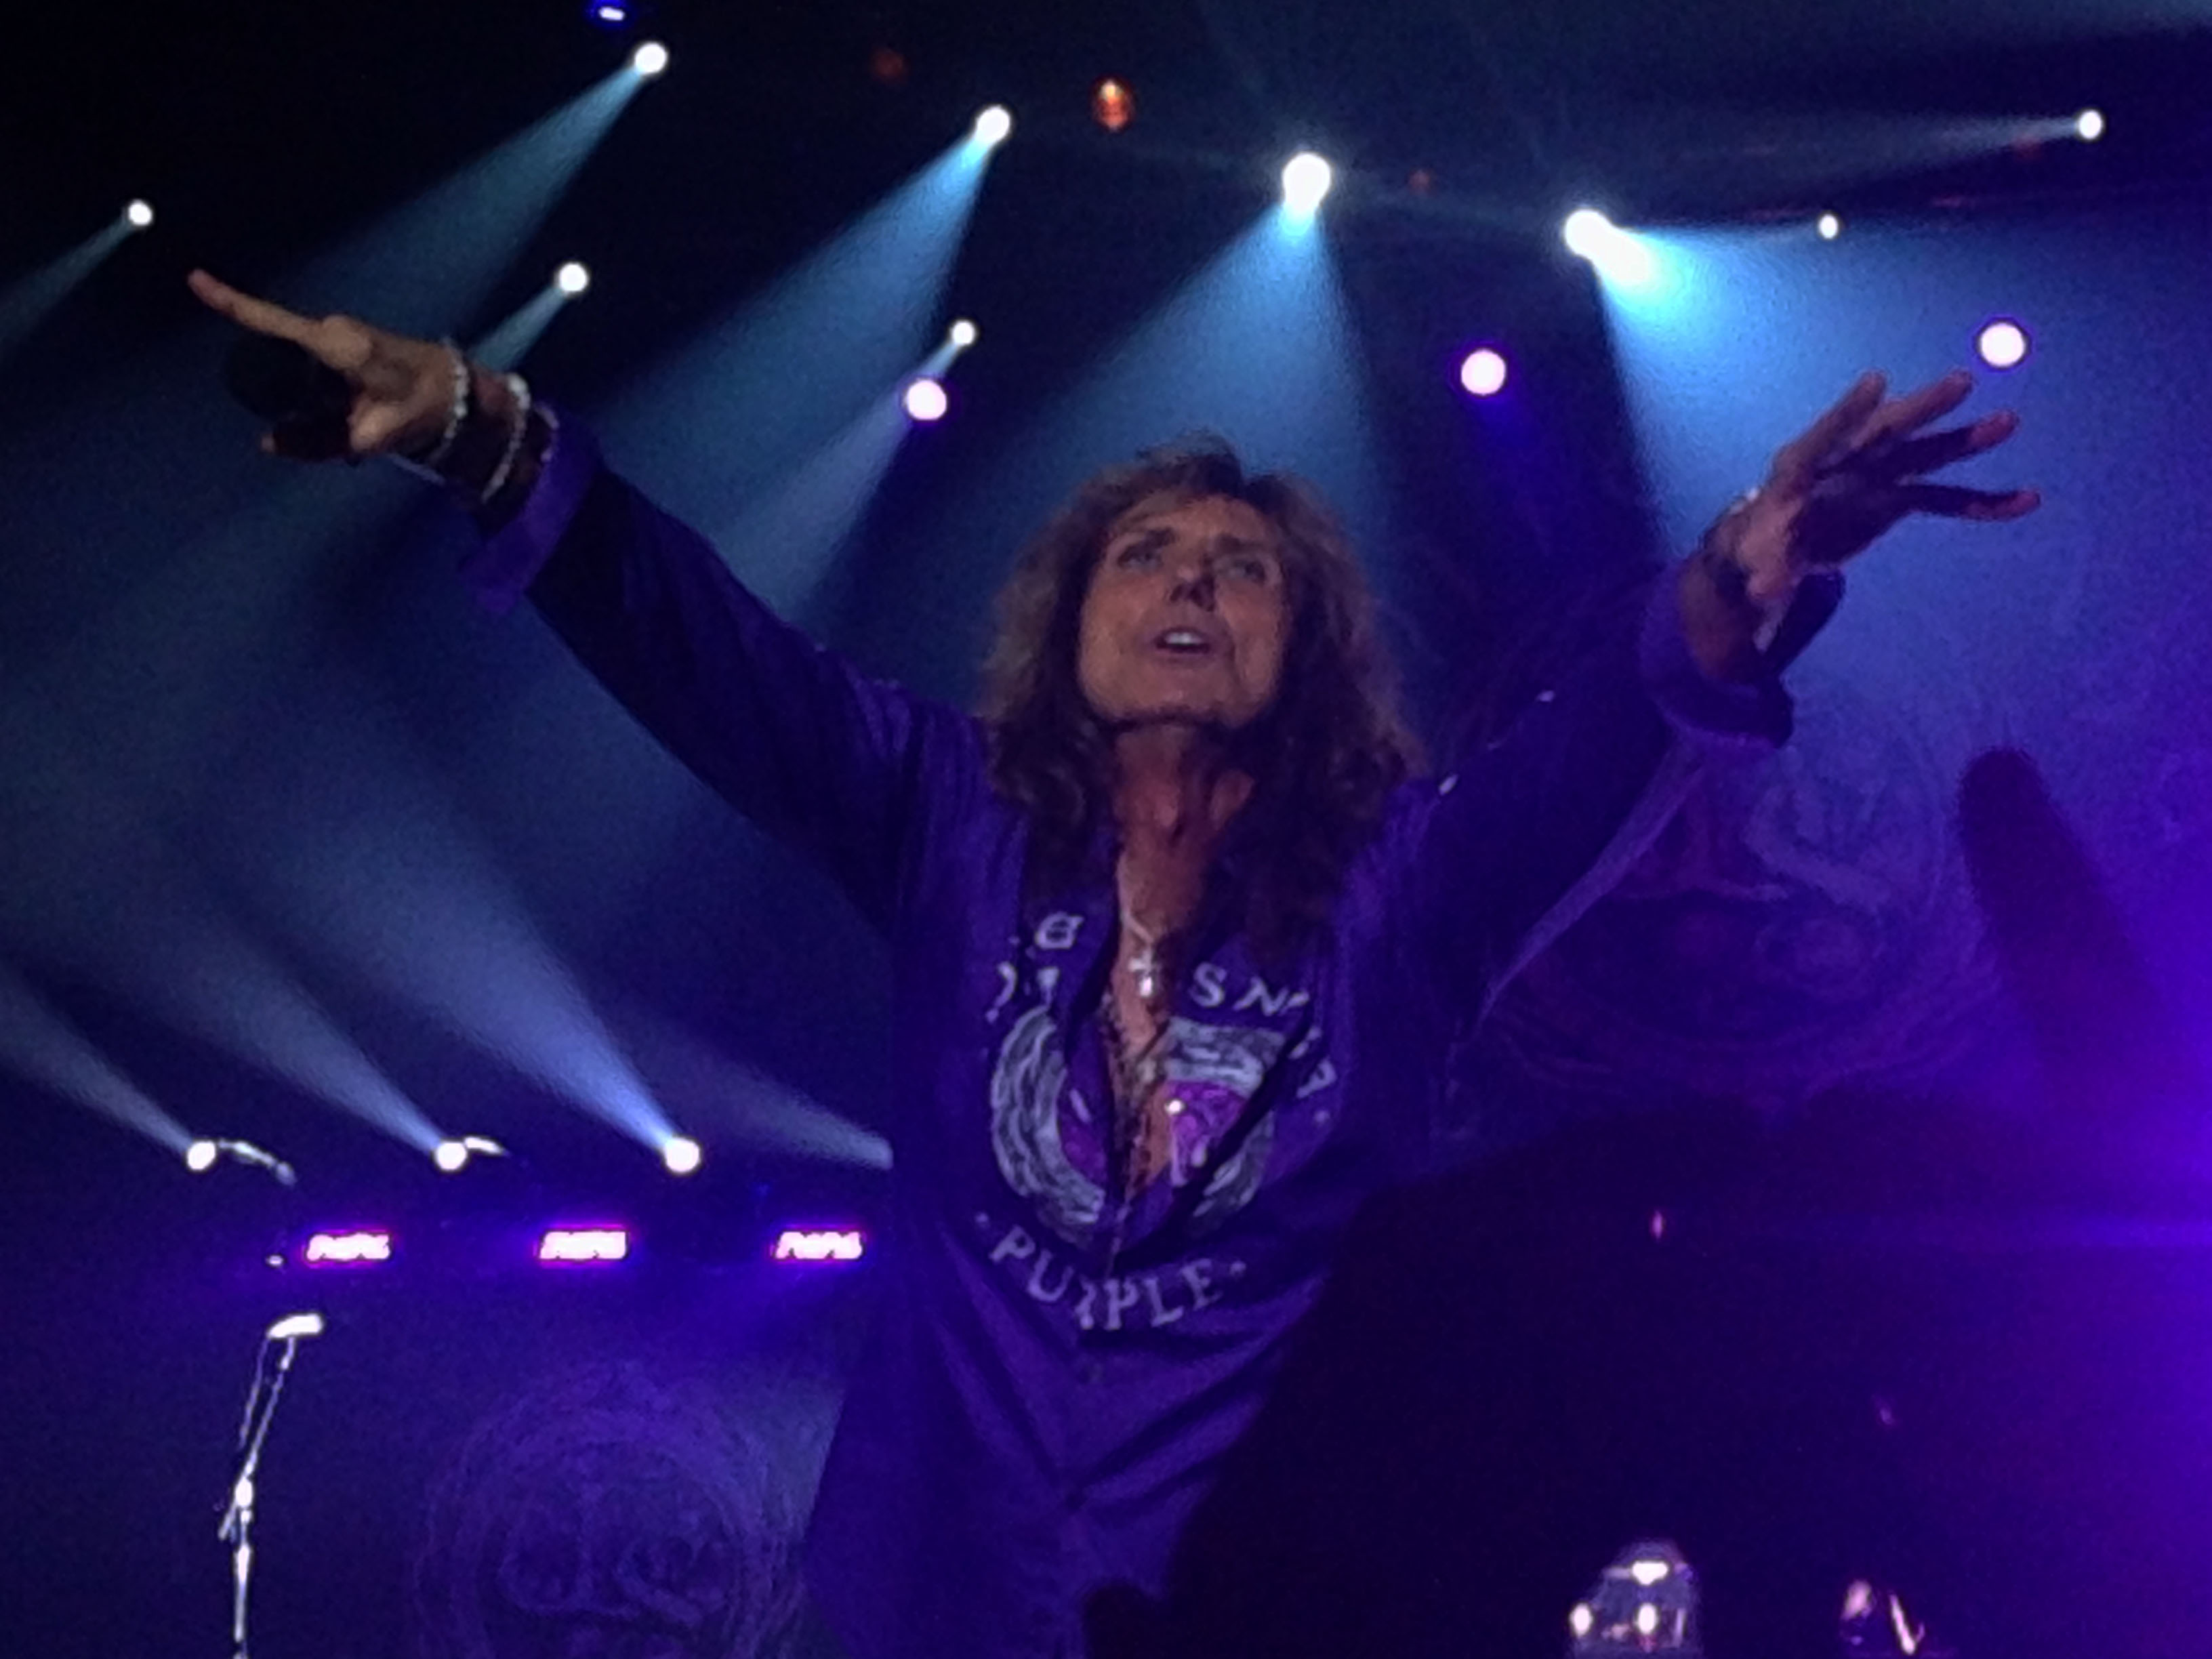 David Coverdale Whitesnake Purple Album Москва Альберт Сафиуллин